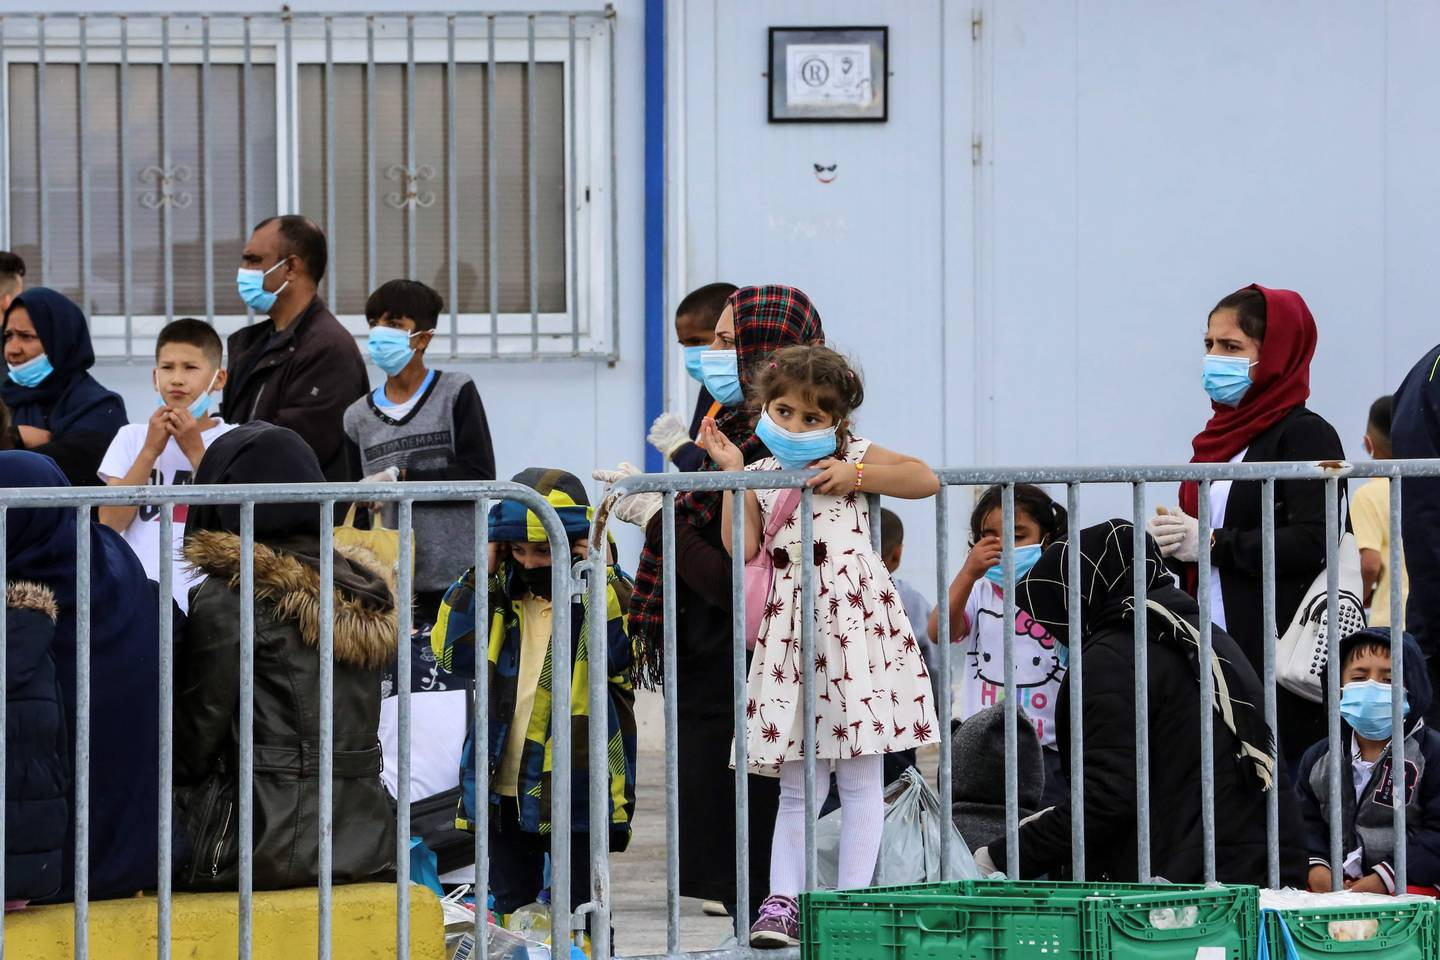 """(FILES) In this file photo taken on May 3, 2020 migrants wait at the port of Mytilene to be transferred from the island of Lesbos to the Greek main land in Moria. - Greece will extend to May 21 a coronavirus lockdown imposed since March on migrant camps and which had been expected to be lifted from May 11, 2020, the authorities said. """"The coronavirus measures of confinement for those living in migrant camps and in reception centres in Greece are prolonged until May 21,"""" the migration and asylum ministry said in a statement on Sunday, six days after the first easing of the general lockdown in the country. The ministry did not say why the camp lockdown was being extended. (Photo by Manolis Lagoutaris / AFP)"""